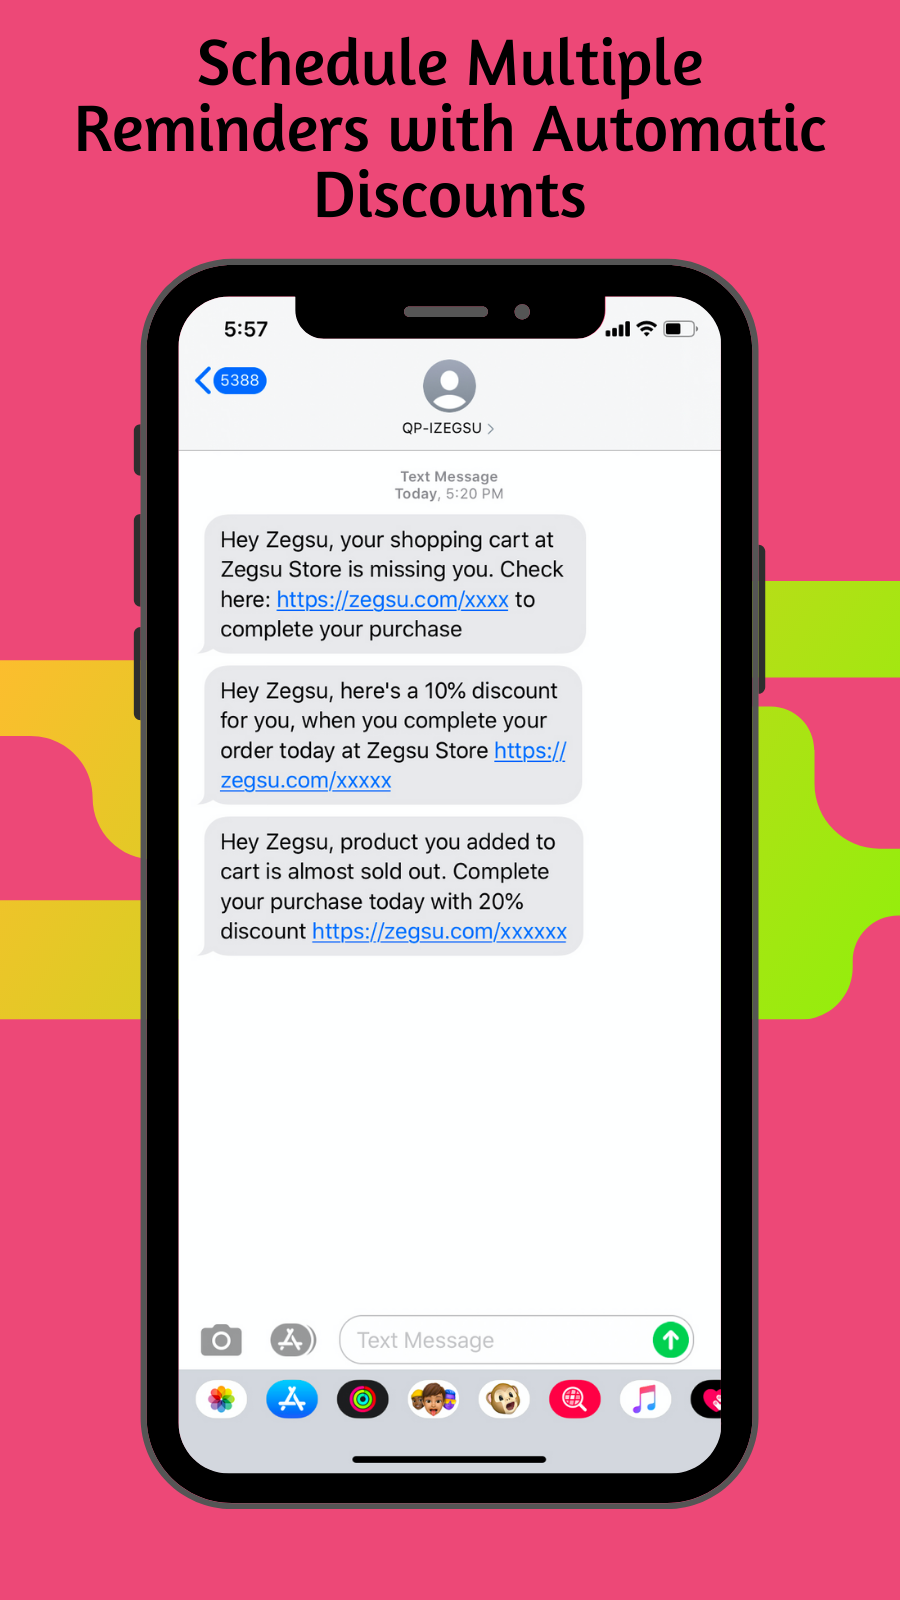 SMS notifications for order status update